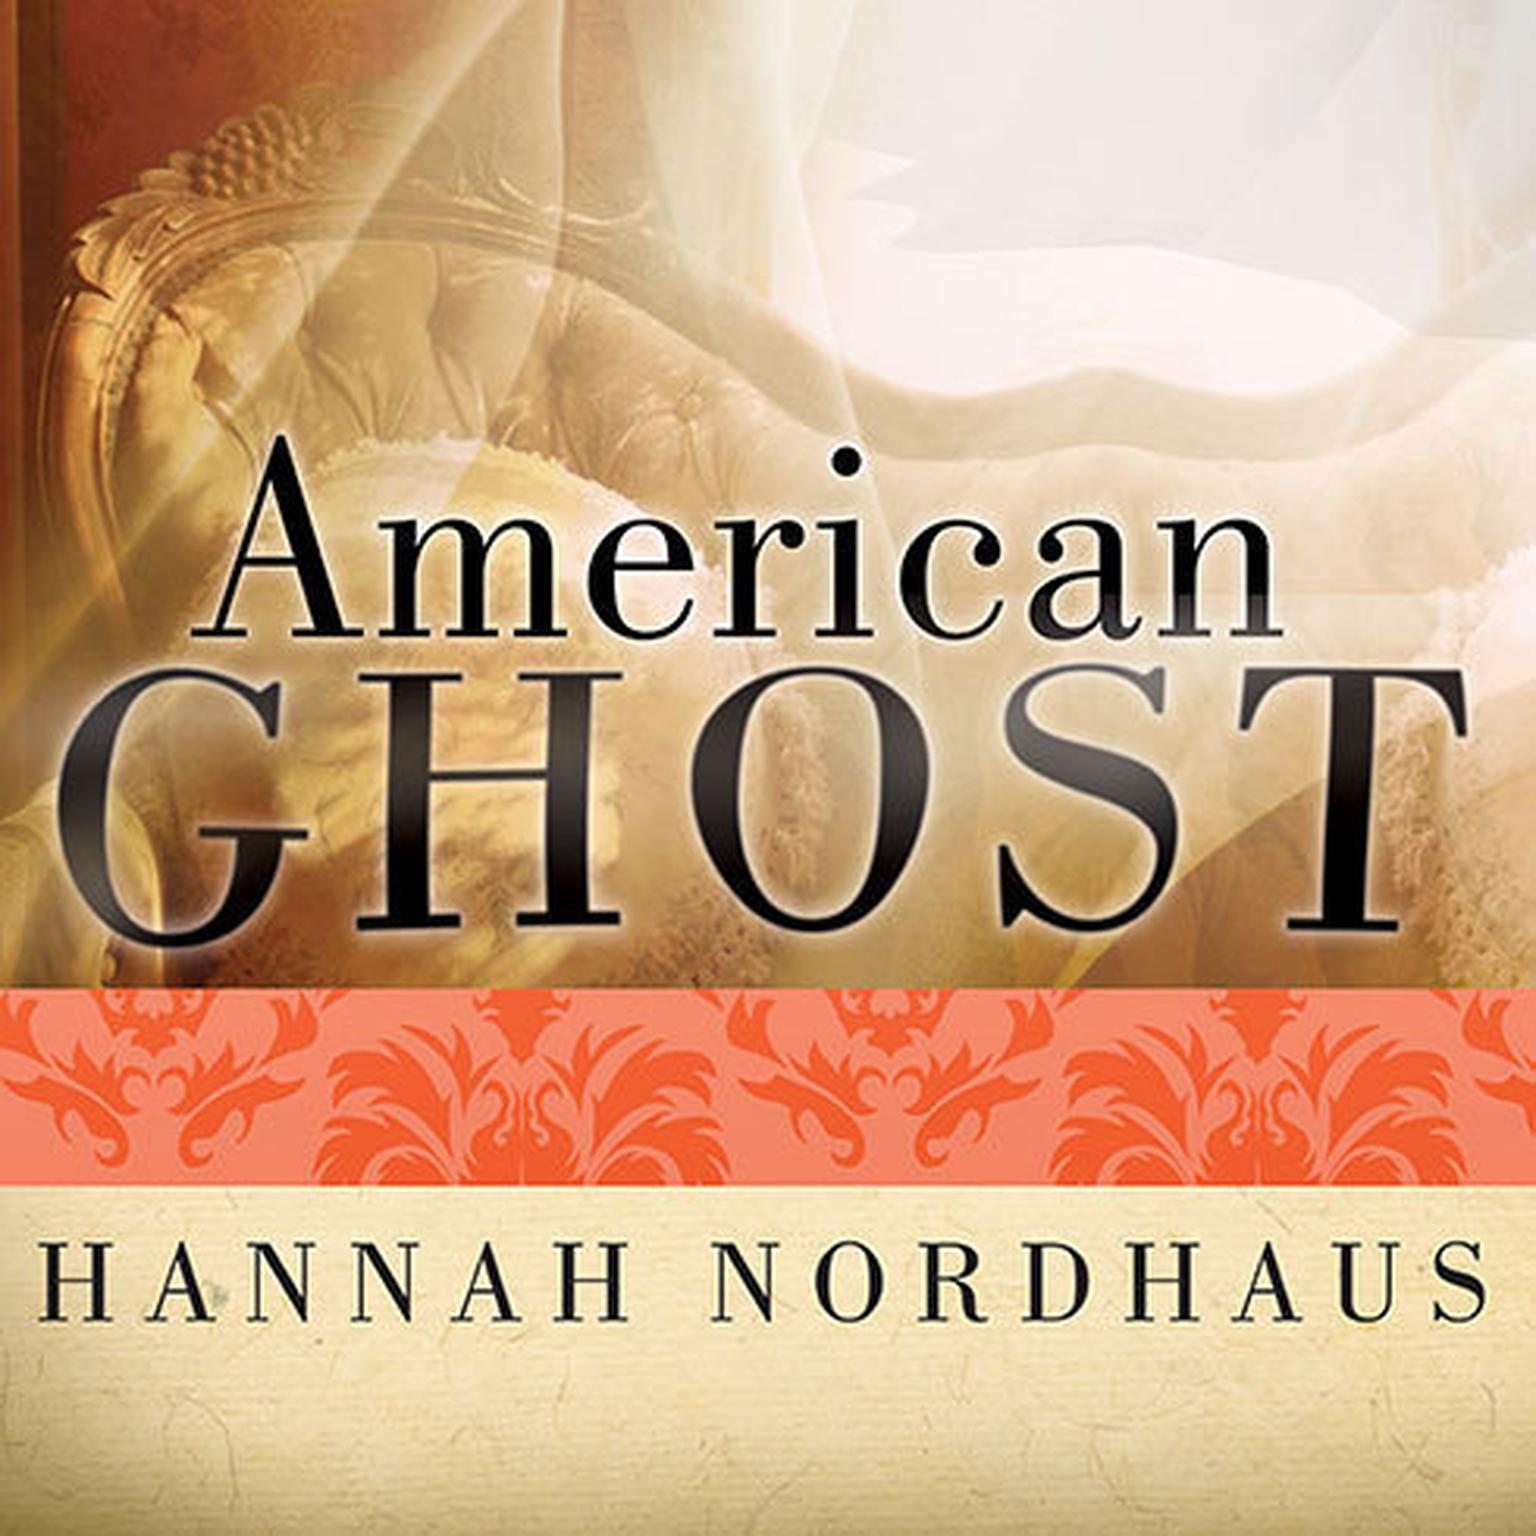 Printable American Ghost: A Family's Haunted Past in the Desert Southwest Audiobook Cover Art